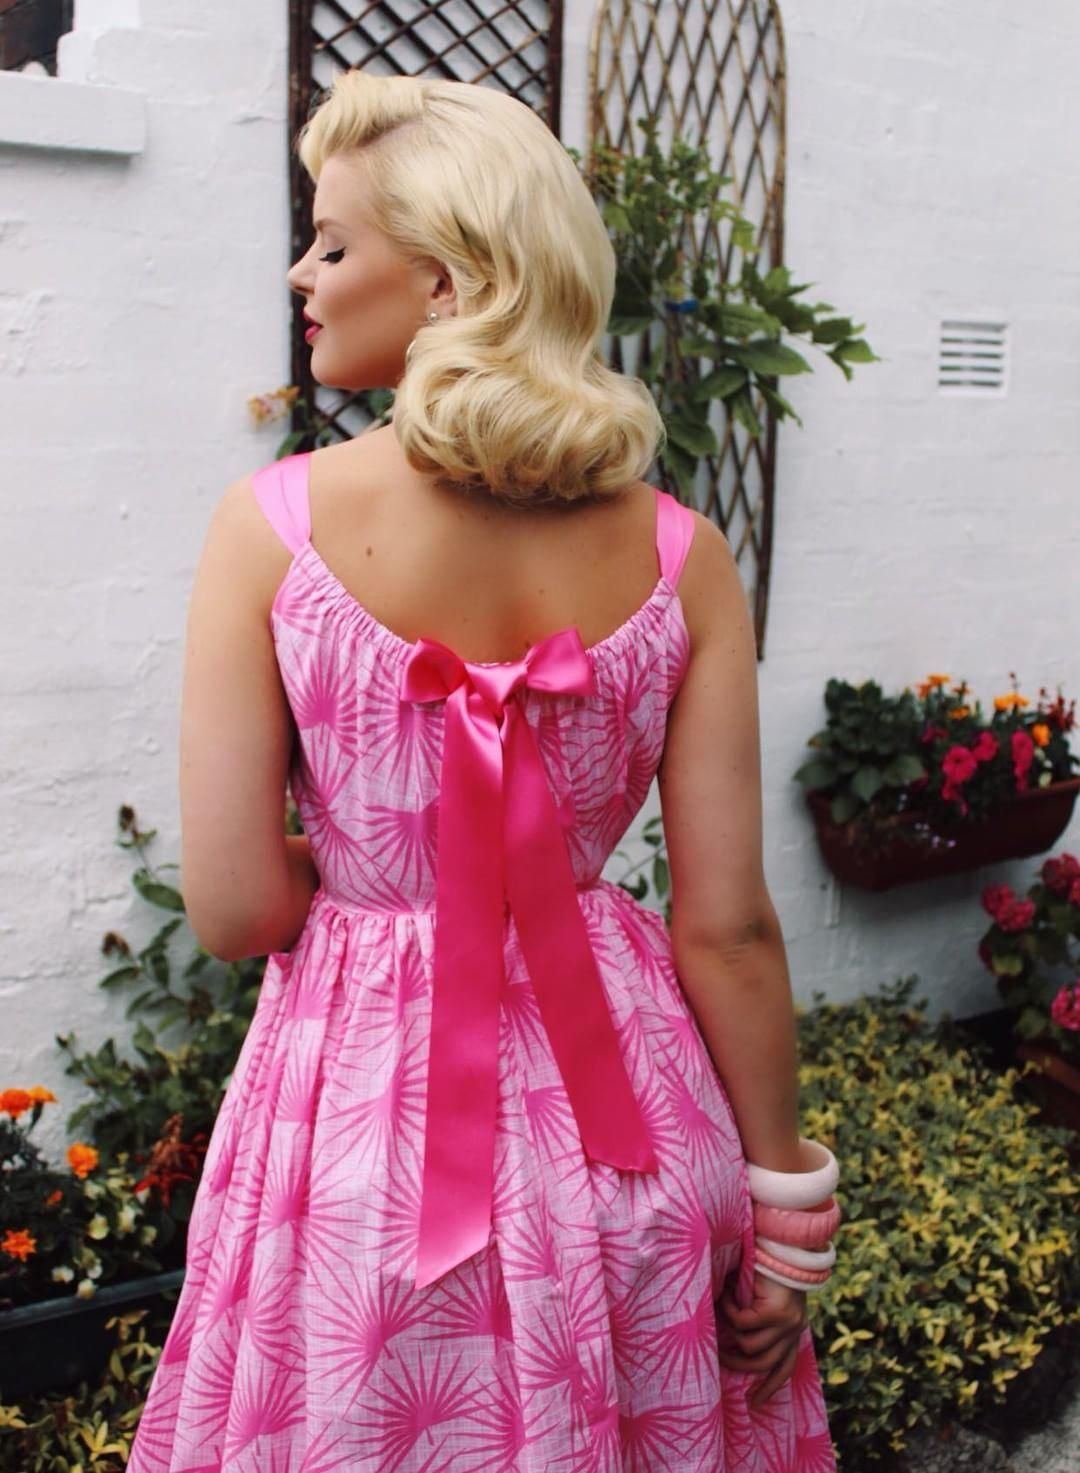 Pink Palm Springs print 1950s repro vintage dress with back